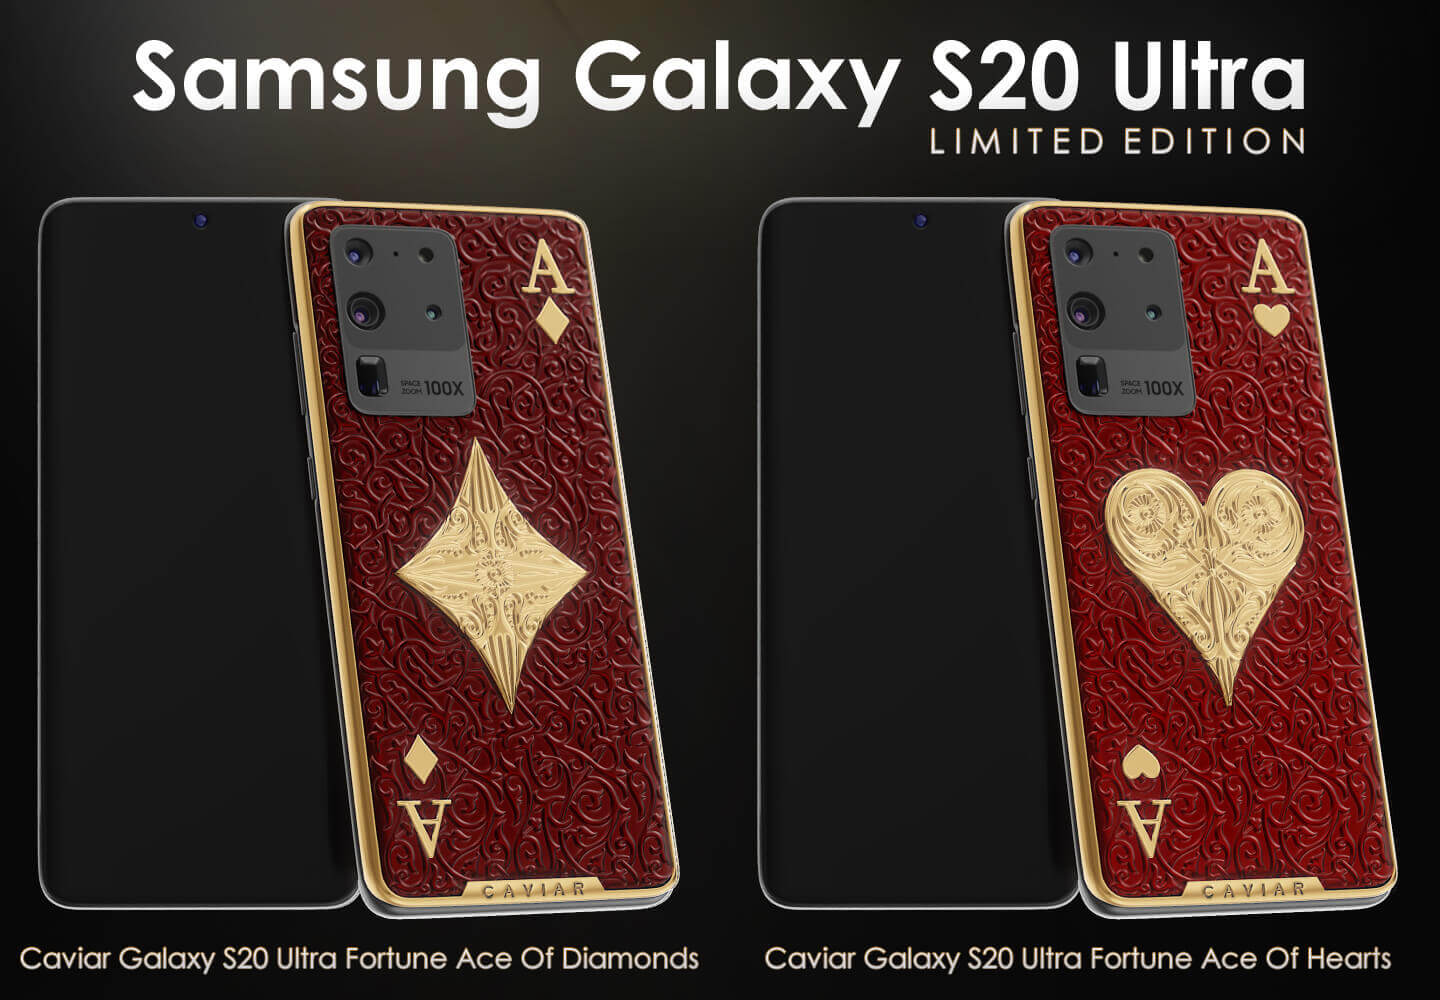 Galaxy S20 Ultra limited edition